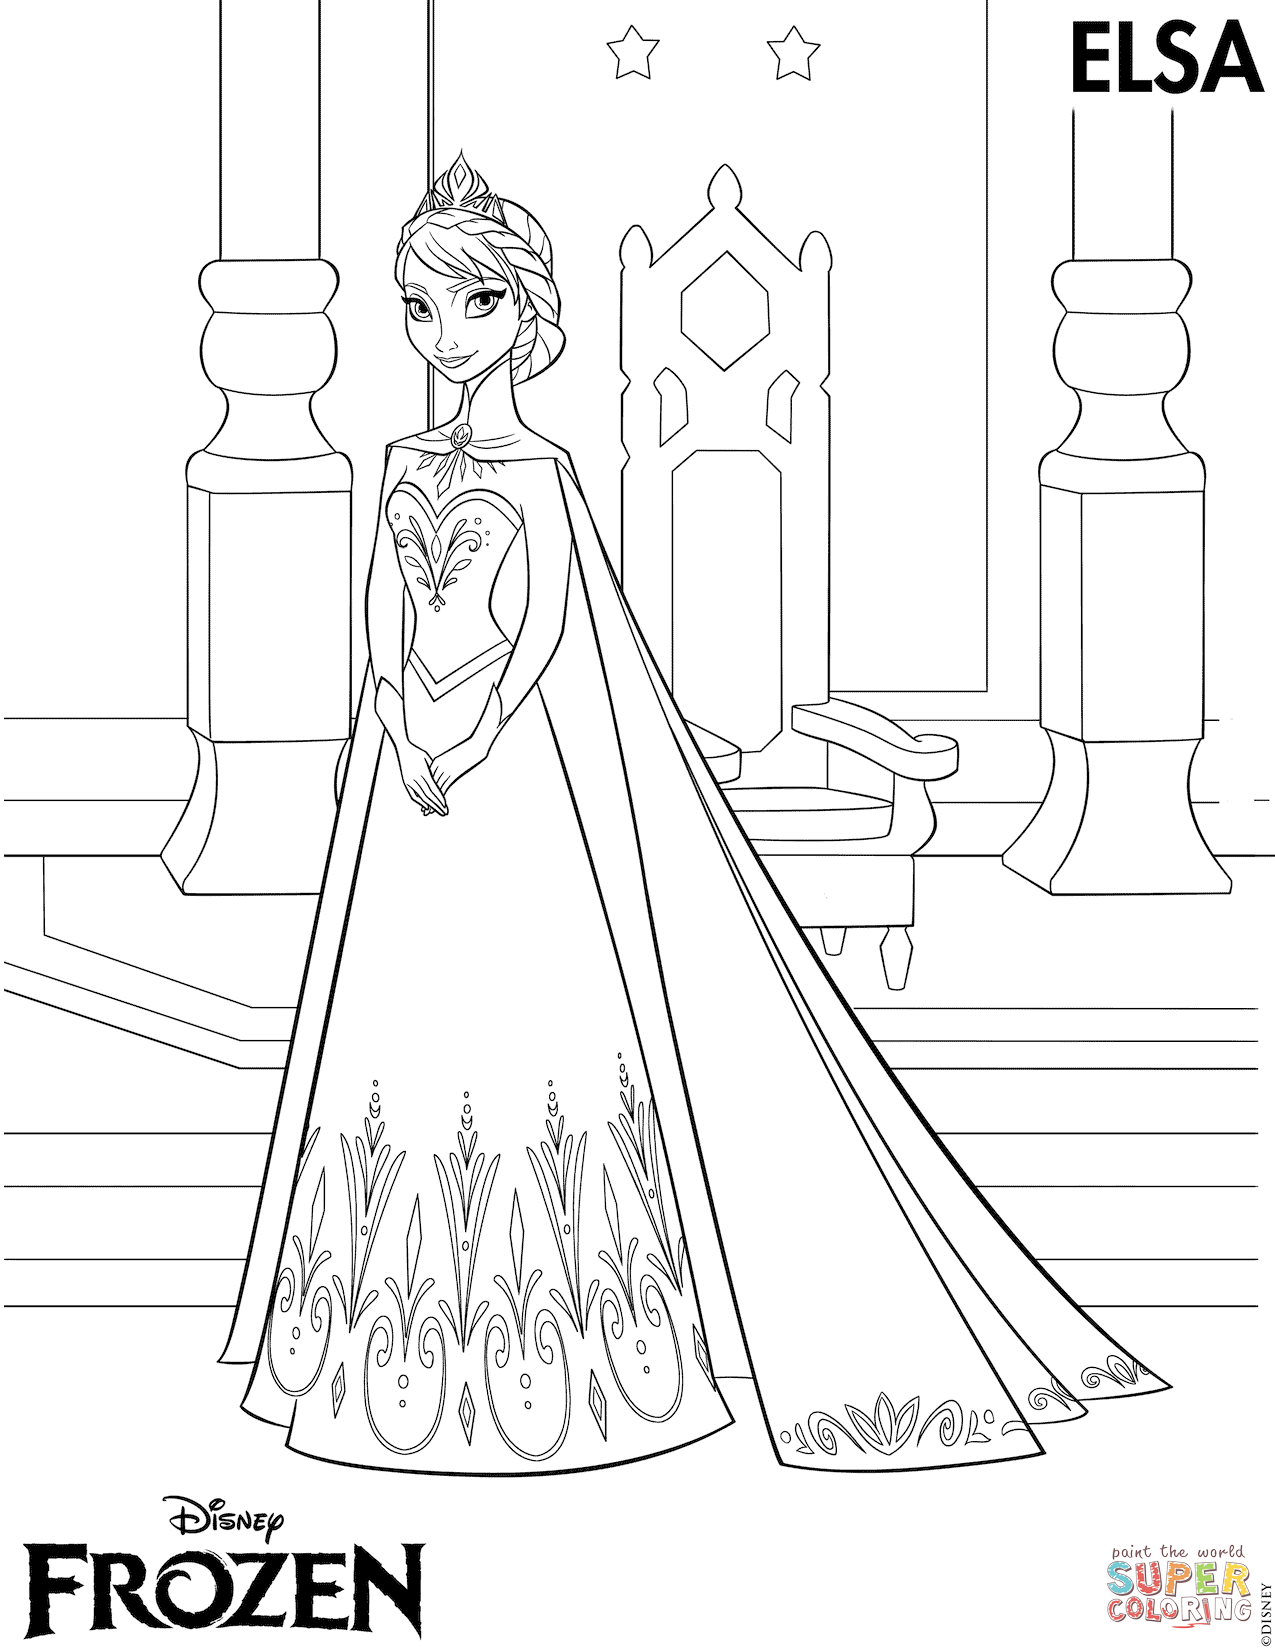 Elsa Coronation From The Frozen Elsa Coloring Pages